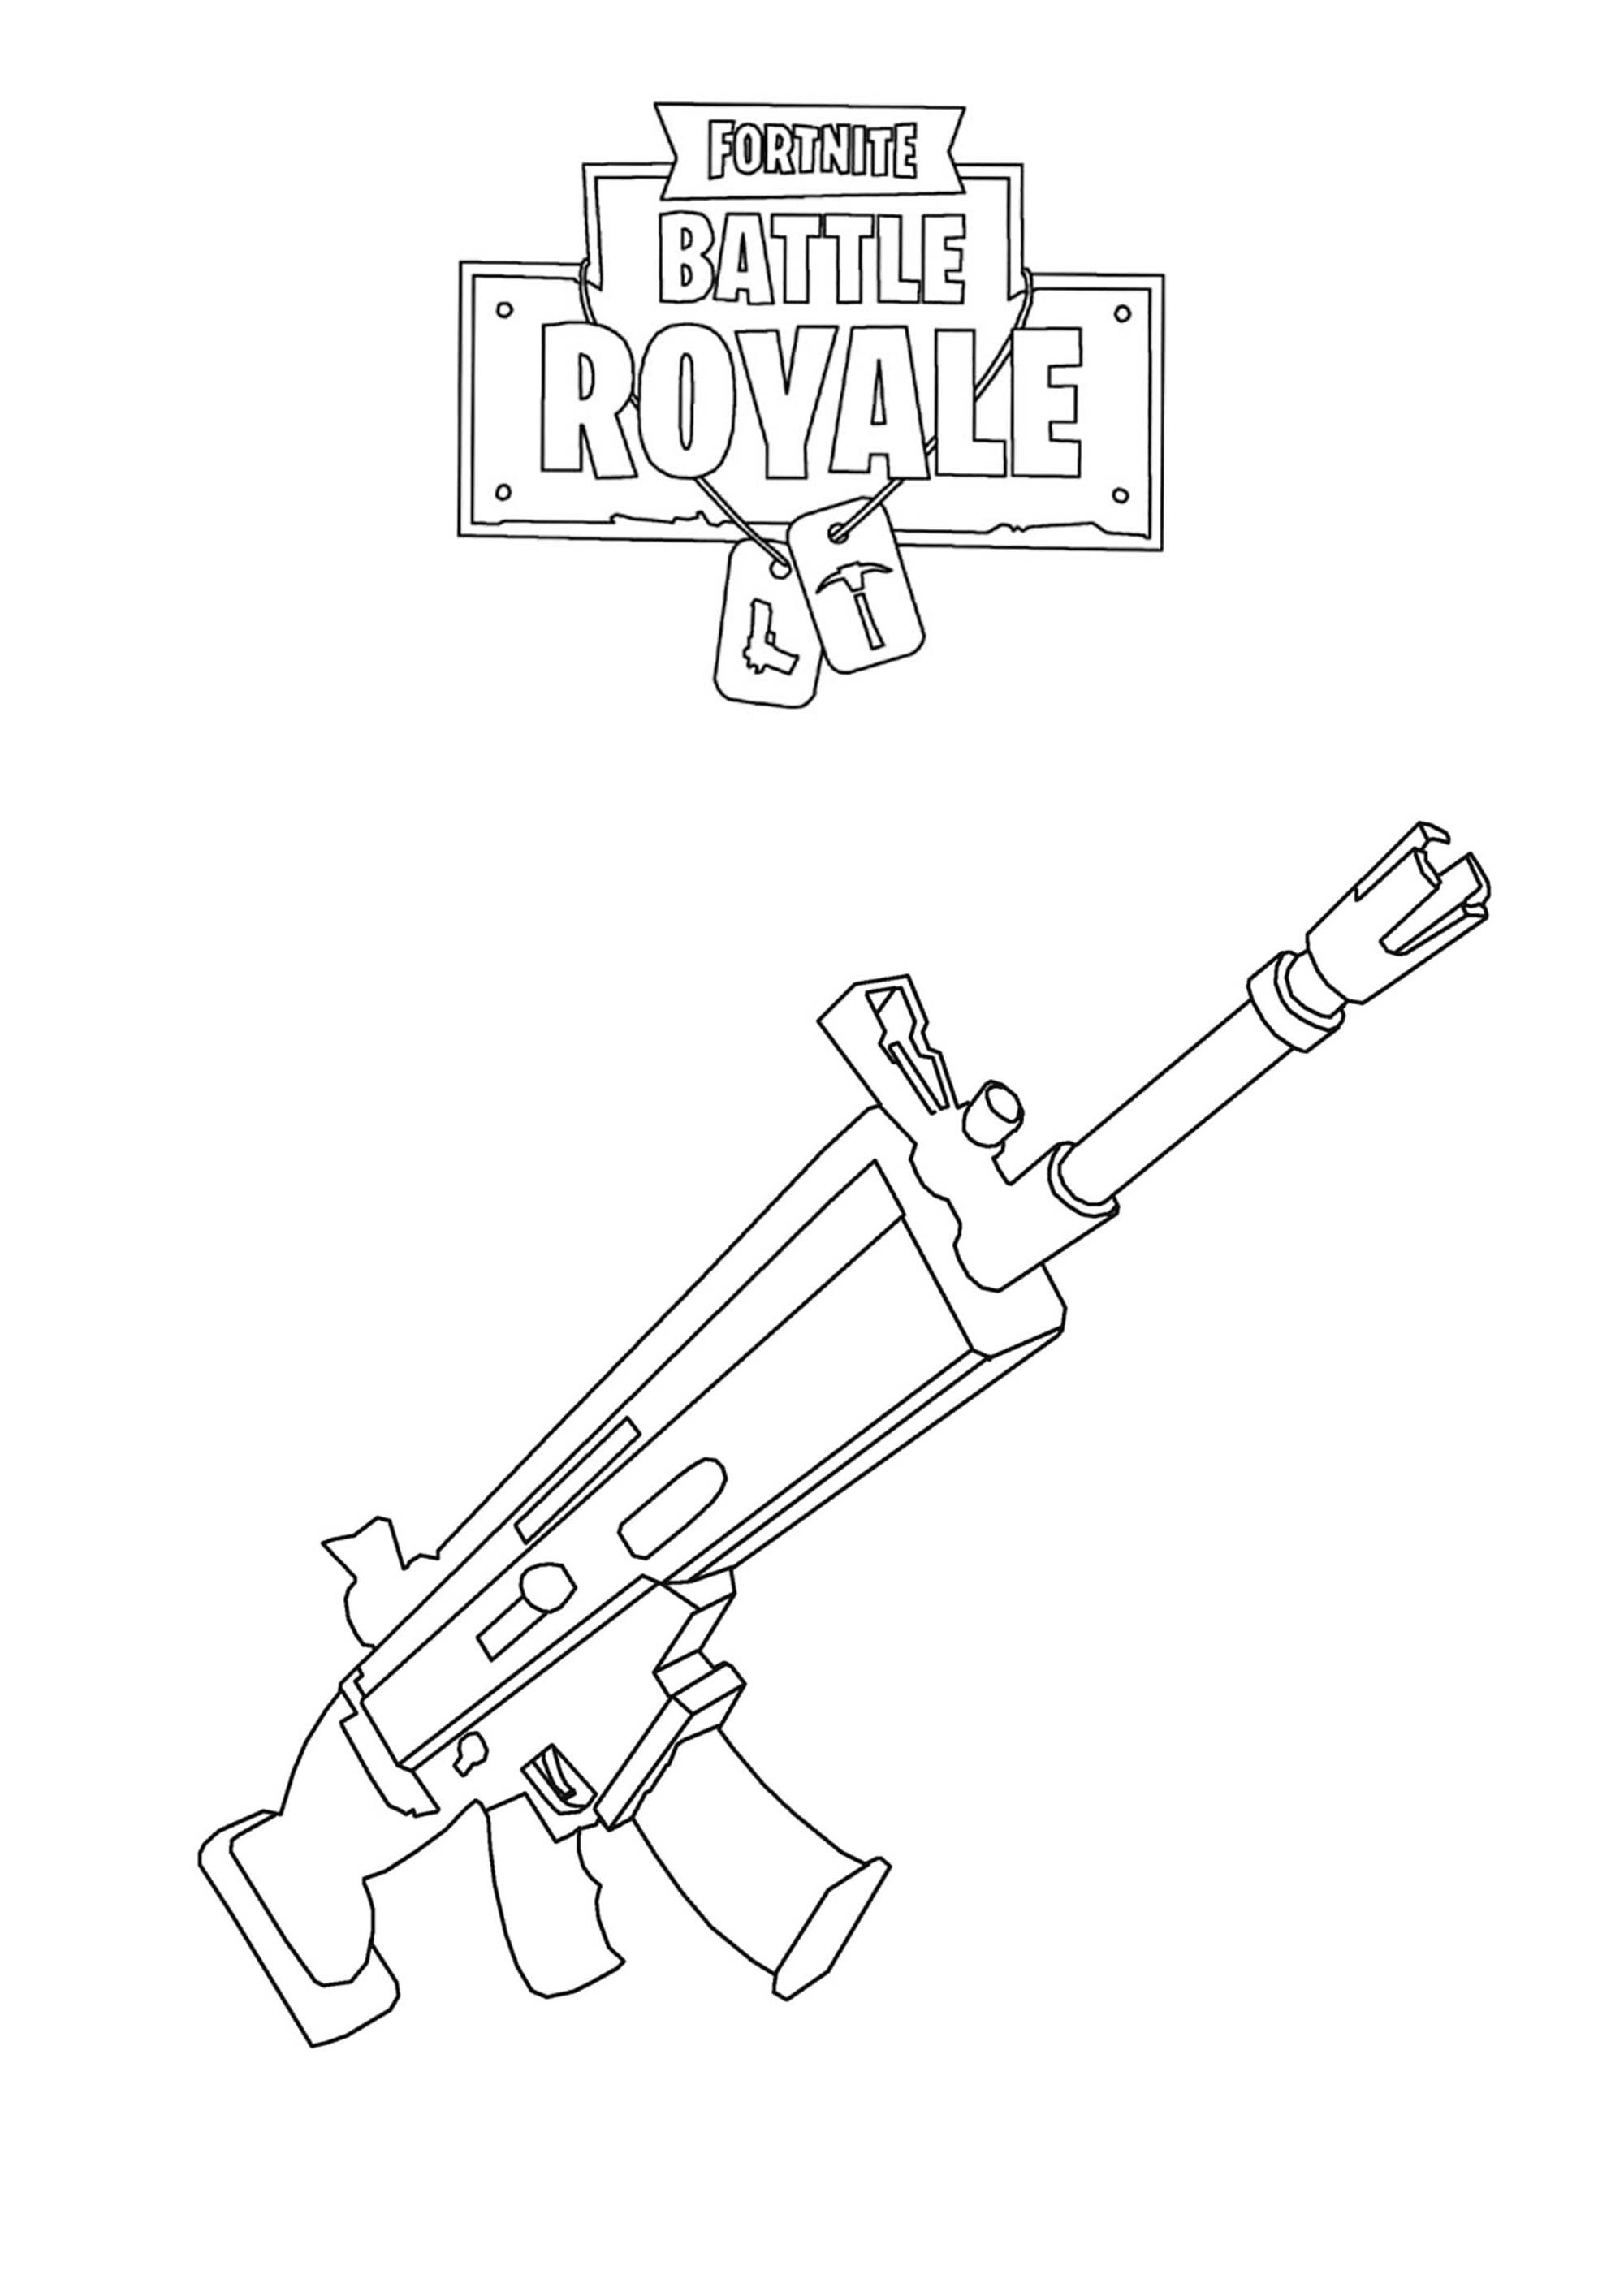 Fortnite Battle Royale Arme d 39 assaut Coloriage